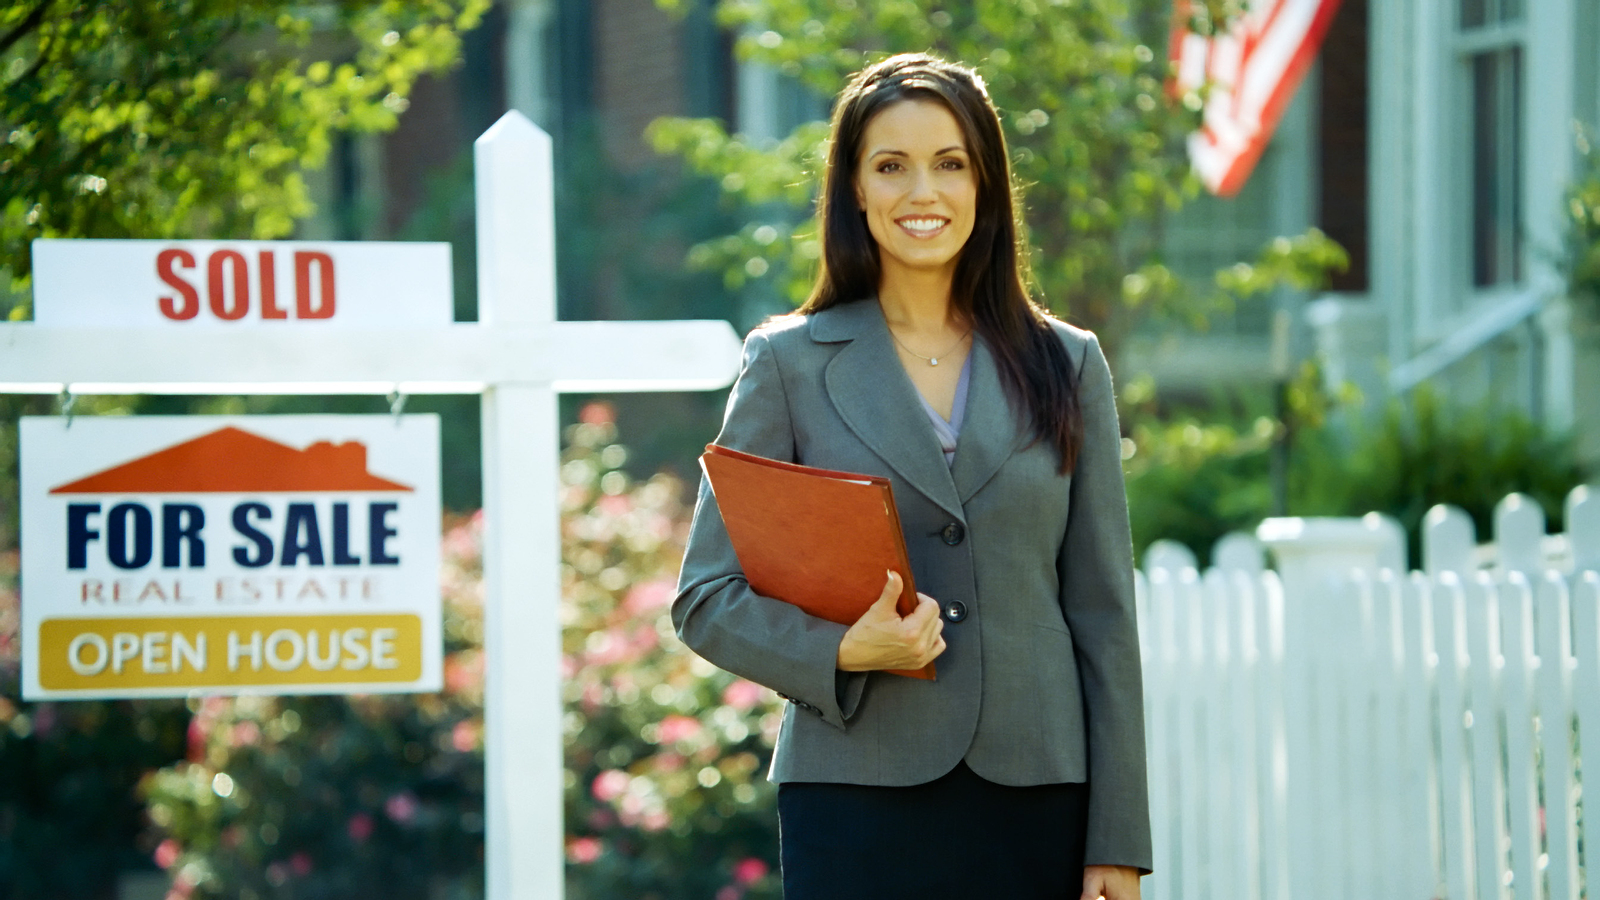 Selling Your Home? Use These 7 Marketing Strategies | LST ...